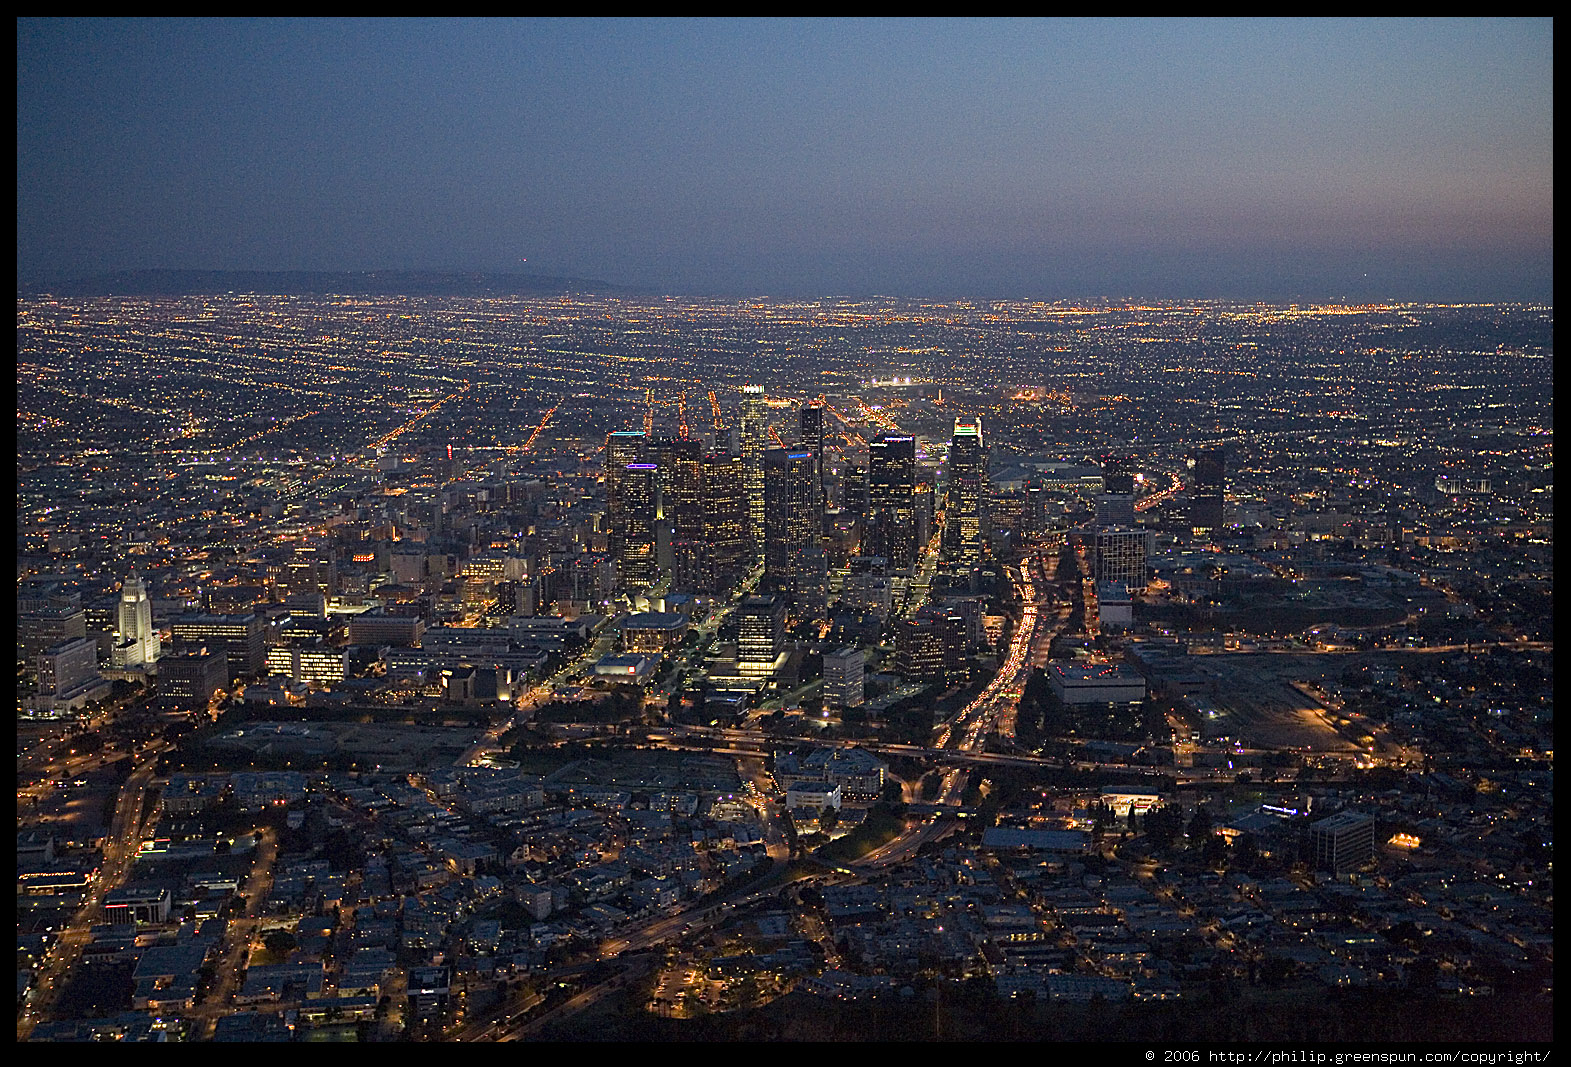 Photograph by philip greenspun la city lights 2 for Is la a city